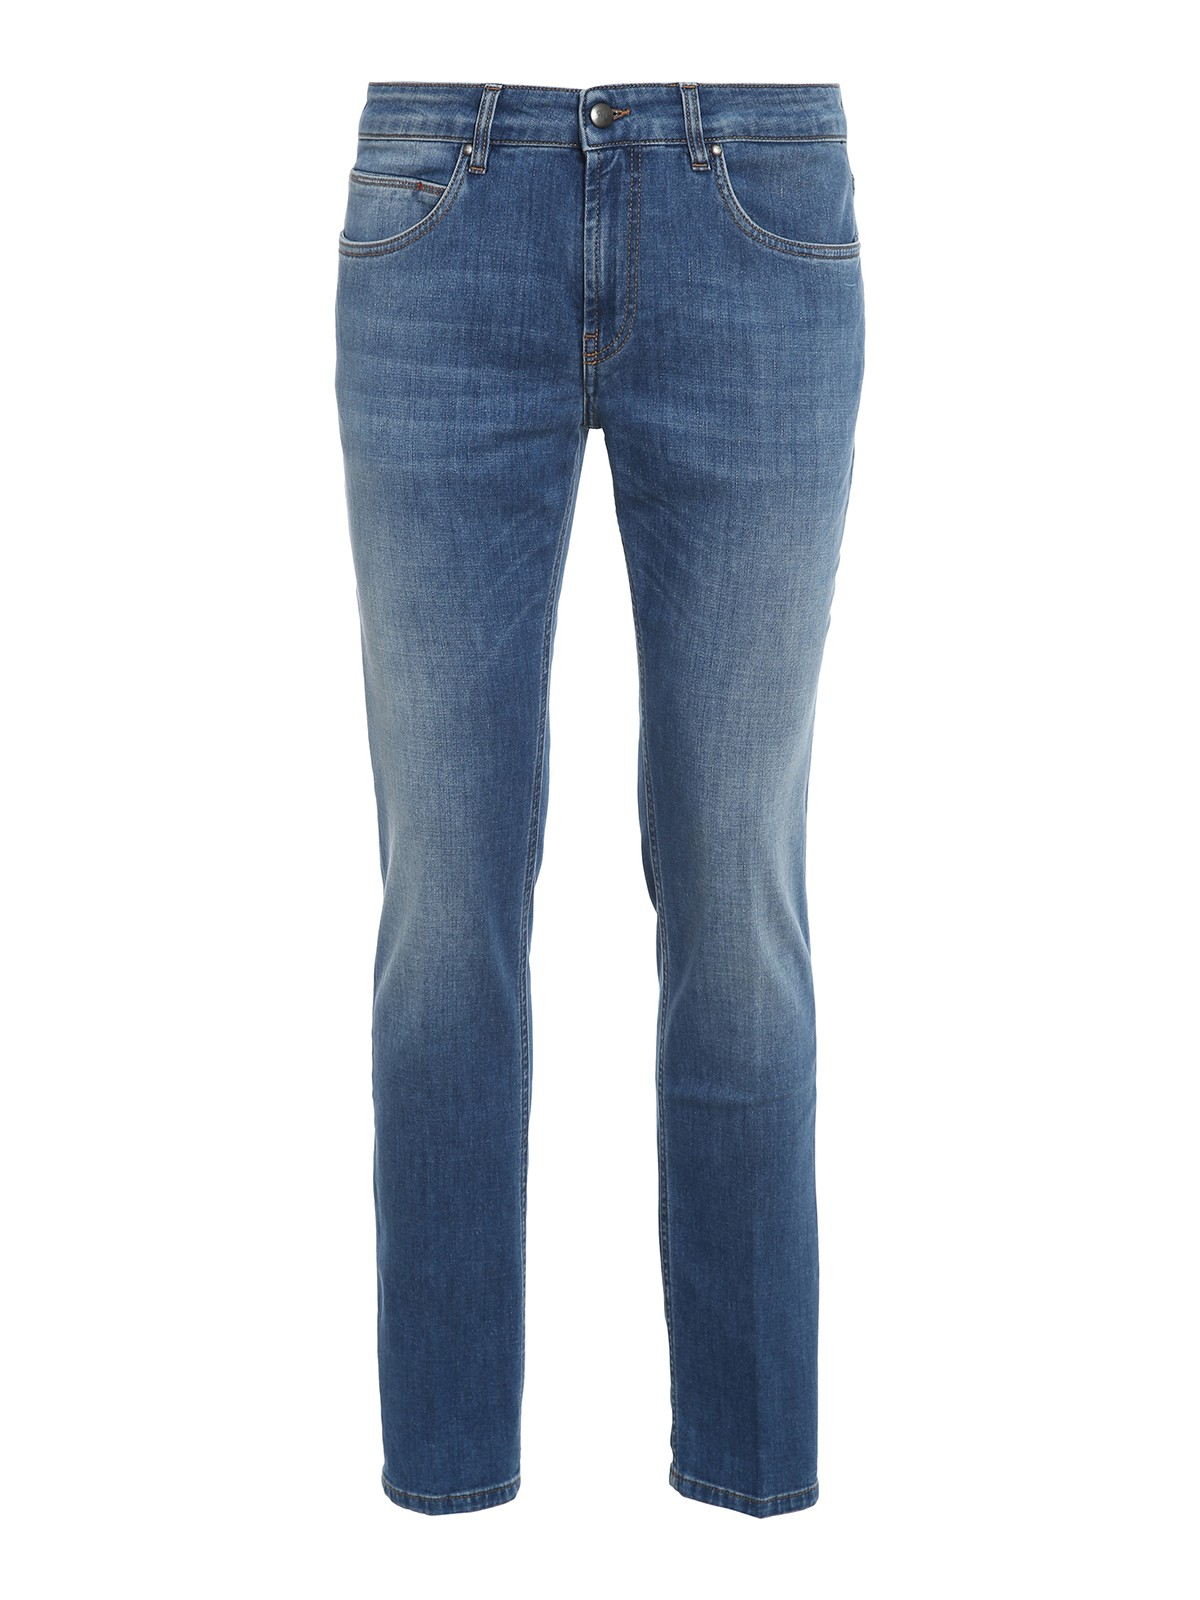 Fay COTTON BLEND STRAIGHT LEG JEANS